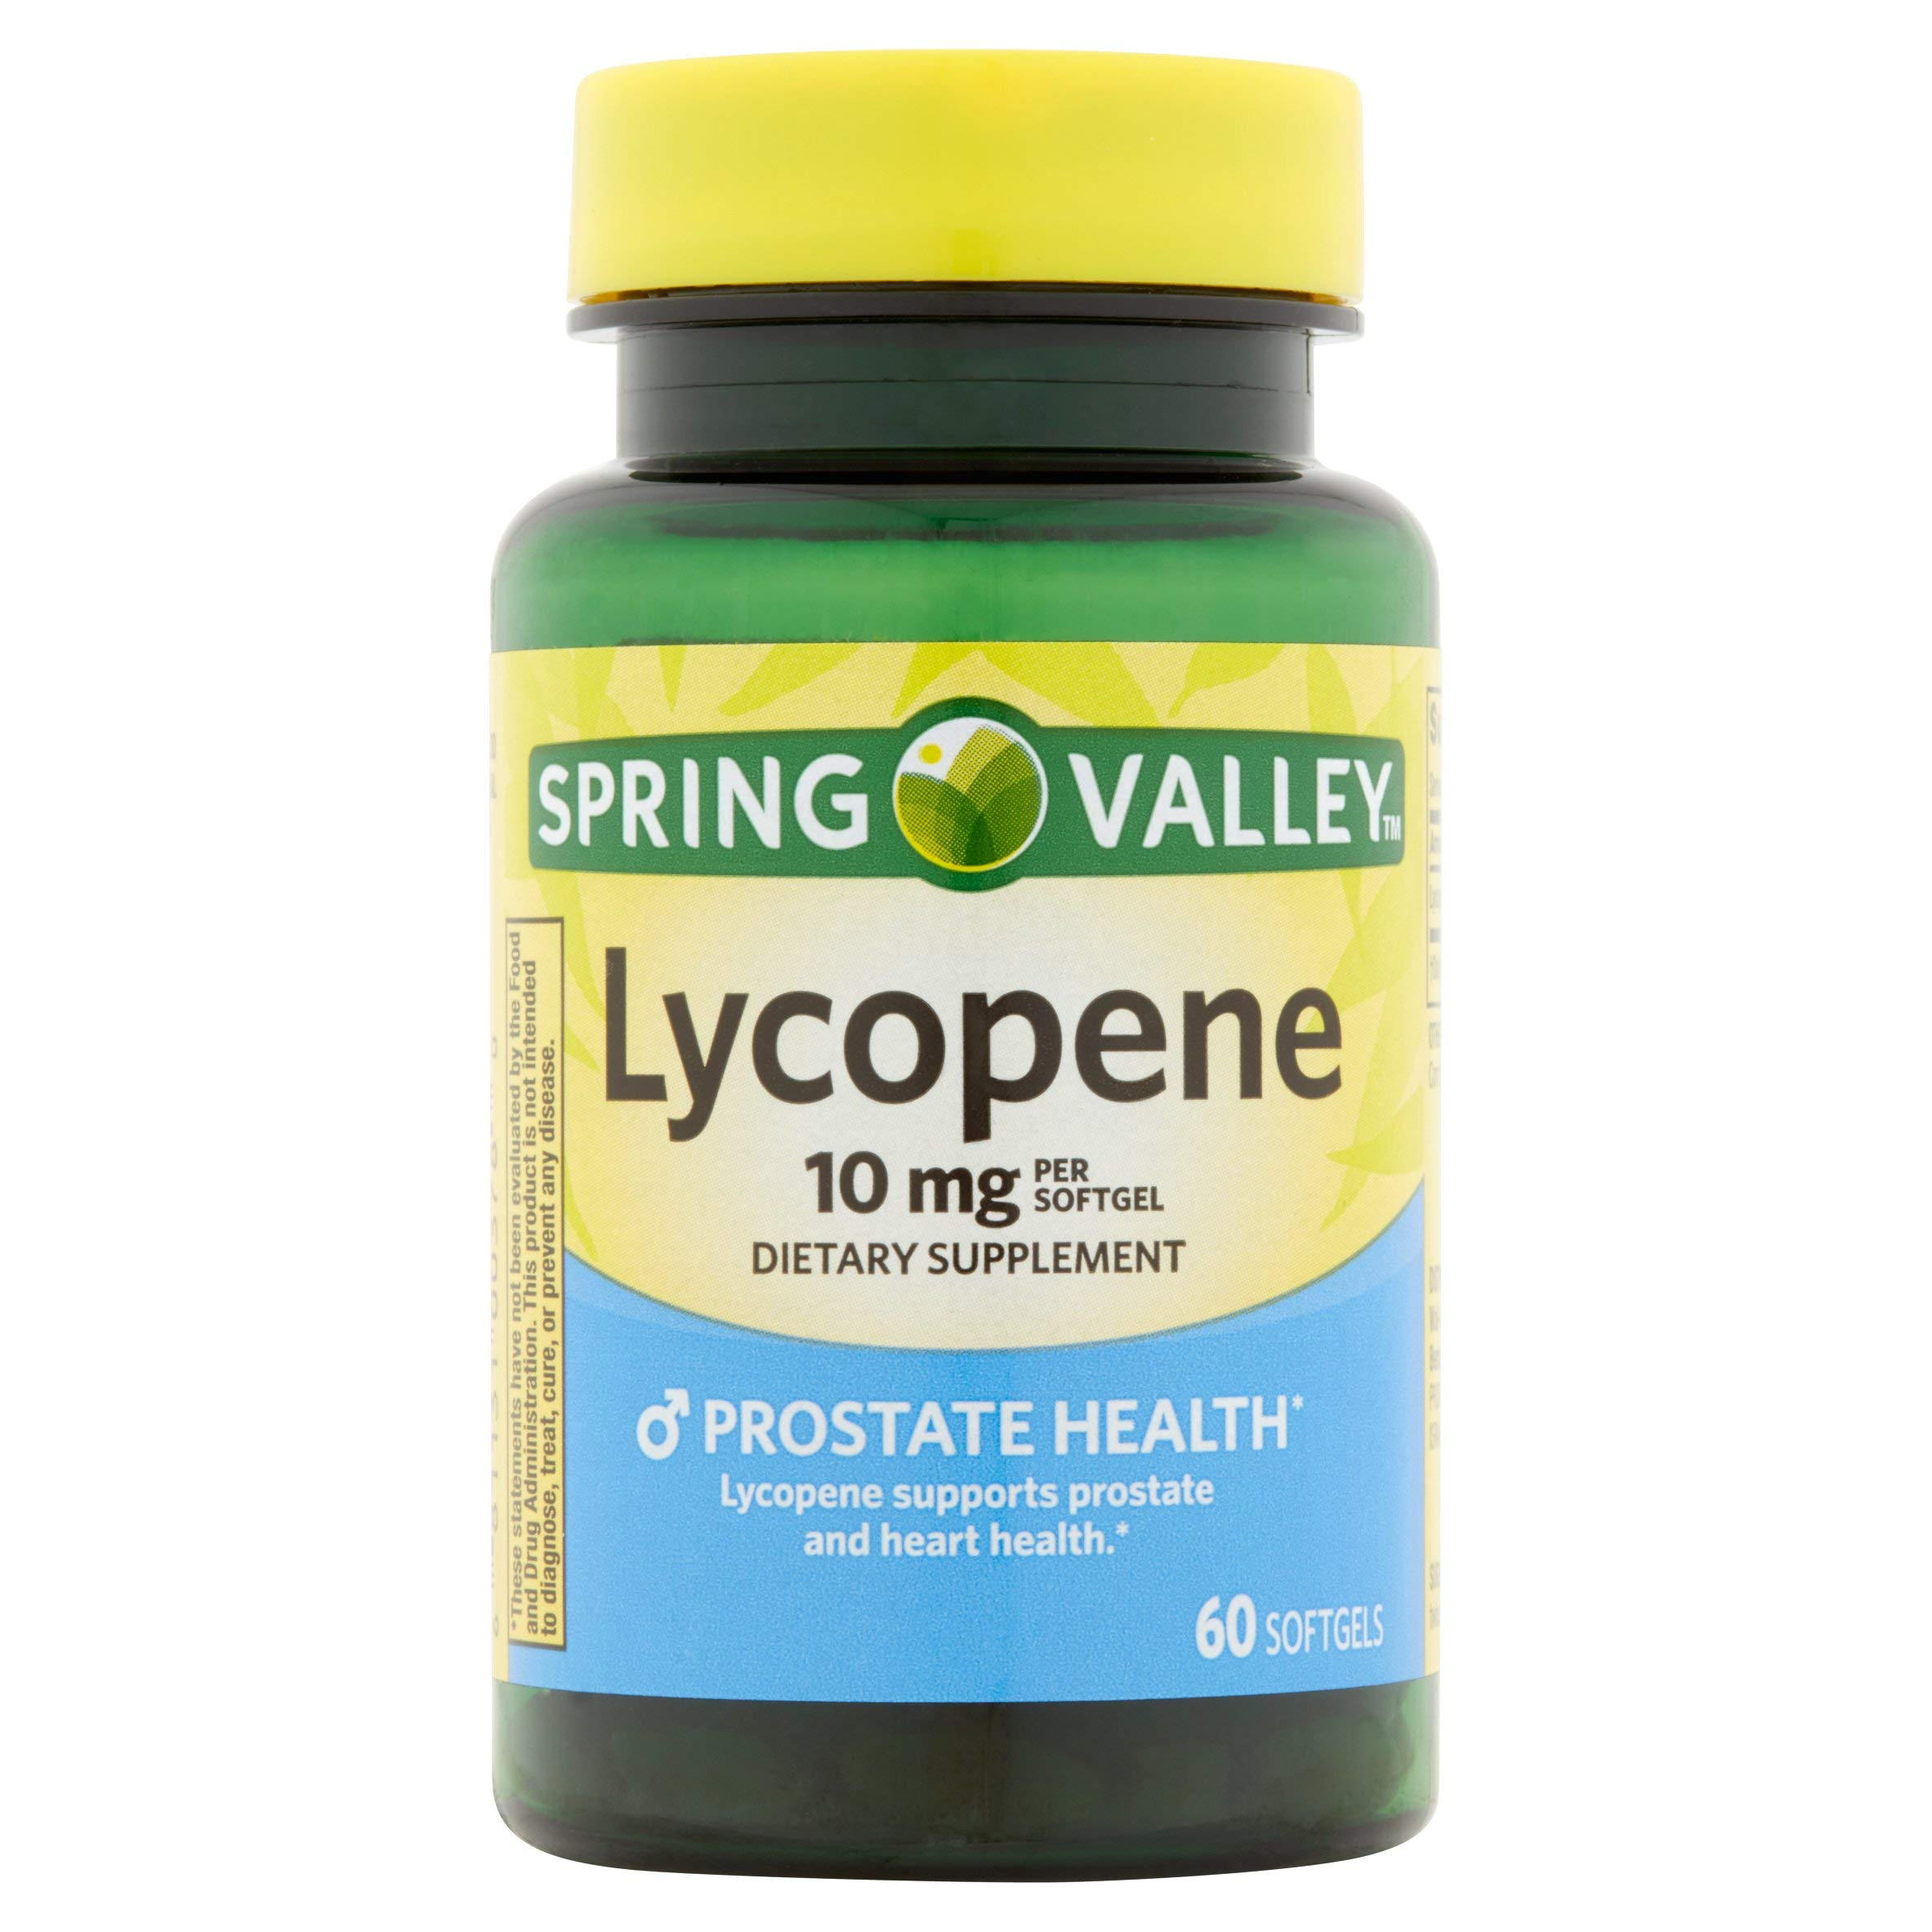 Spring Valley Lycopene 10 mg, Prostate Health, 60 Softgels (Pack of 2) by Spring Valley